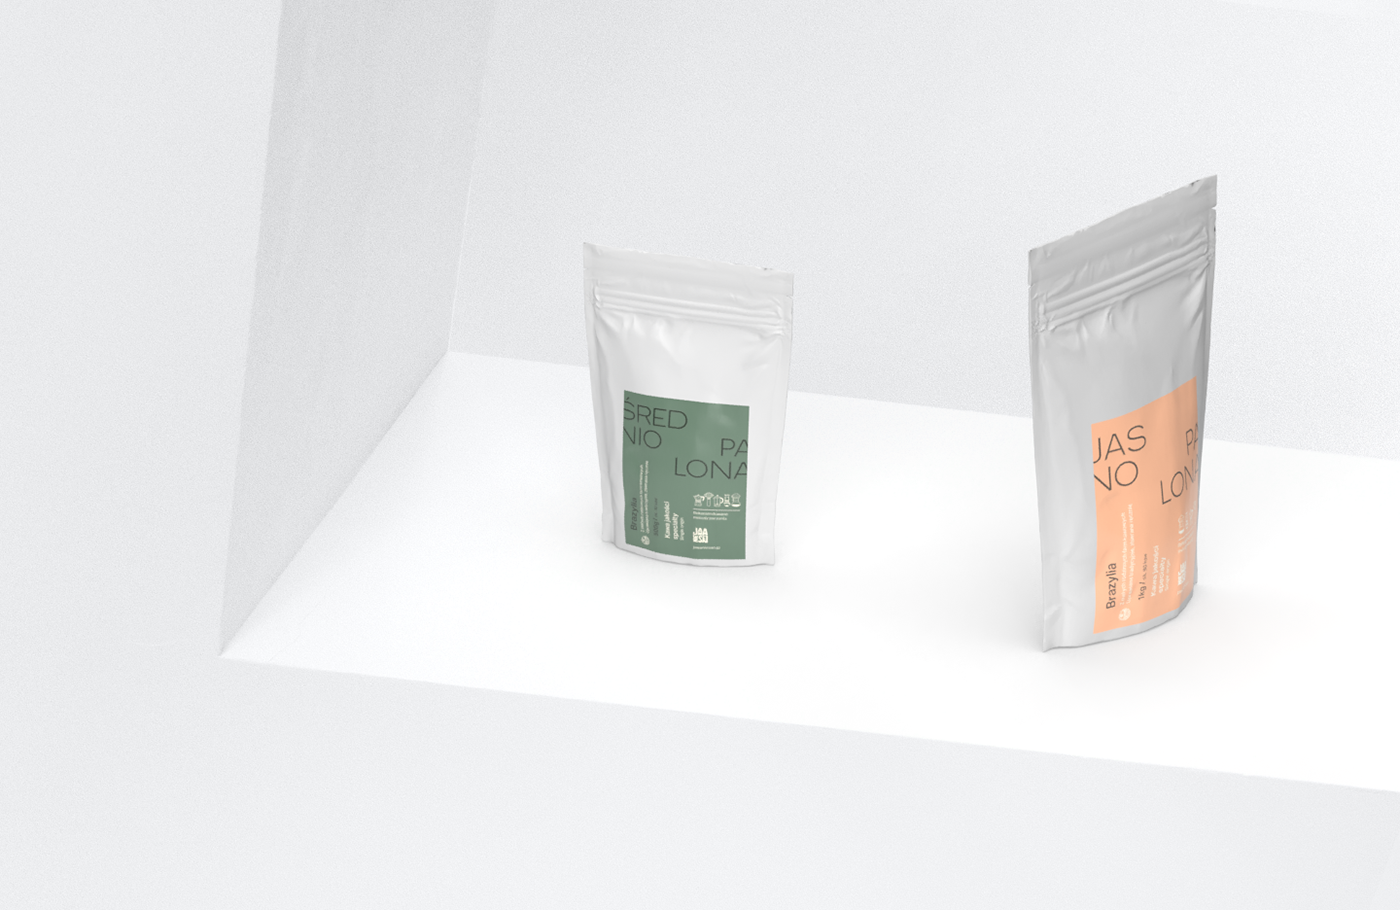 Two coffee bag standing on a white set with sharp angles.